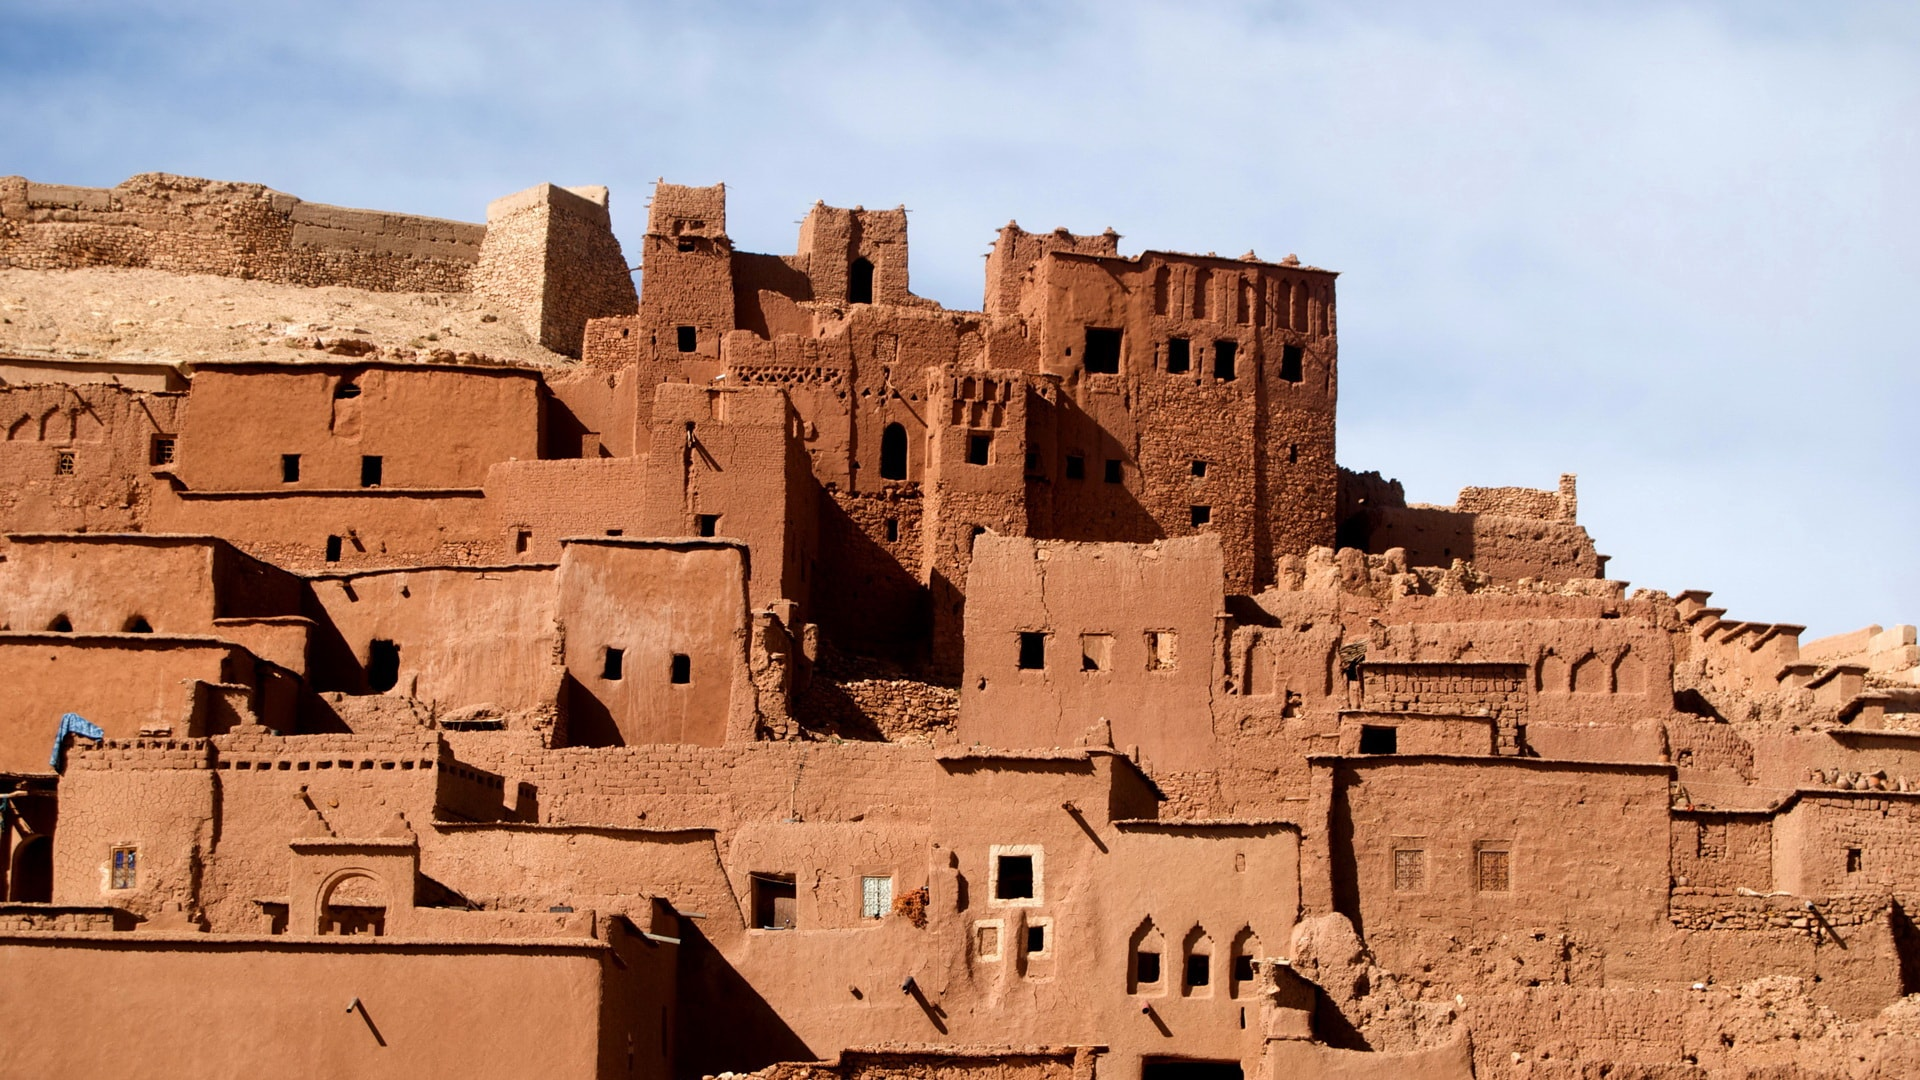 pathfinders-treks - 6 day trek morocco high atlas from marrakech